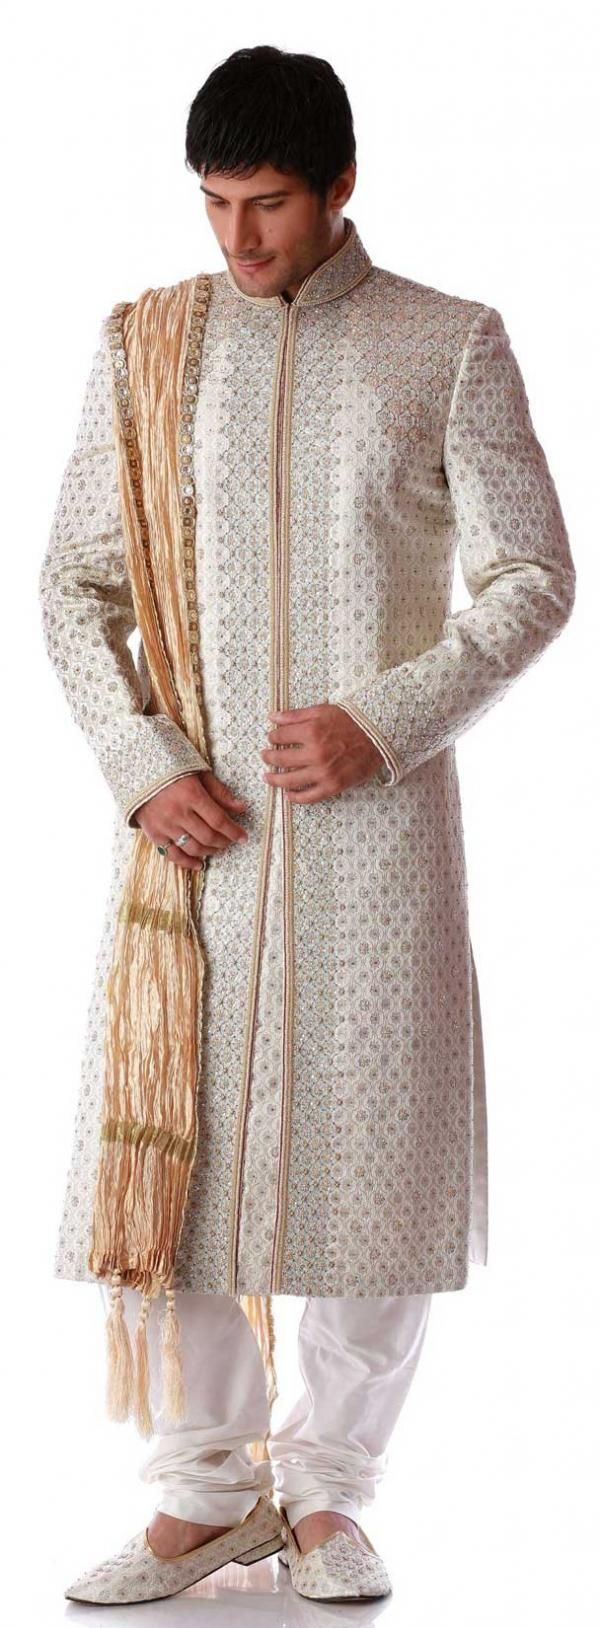 Nice Sherwani for the groom